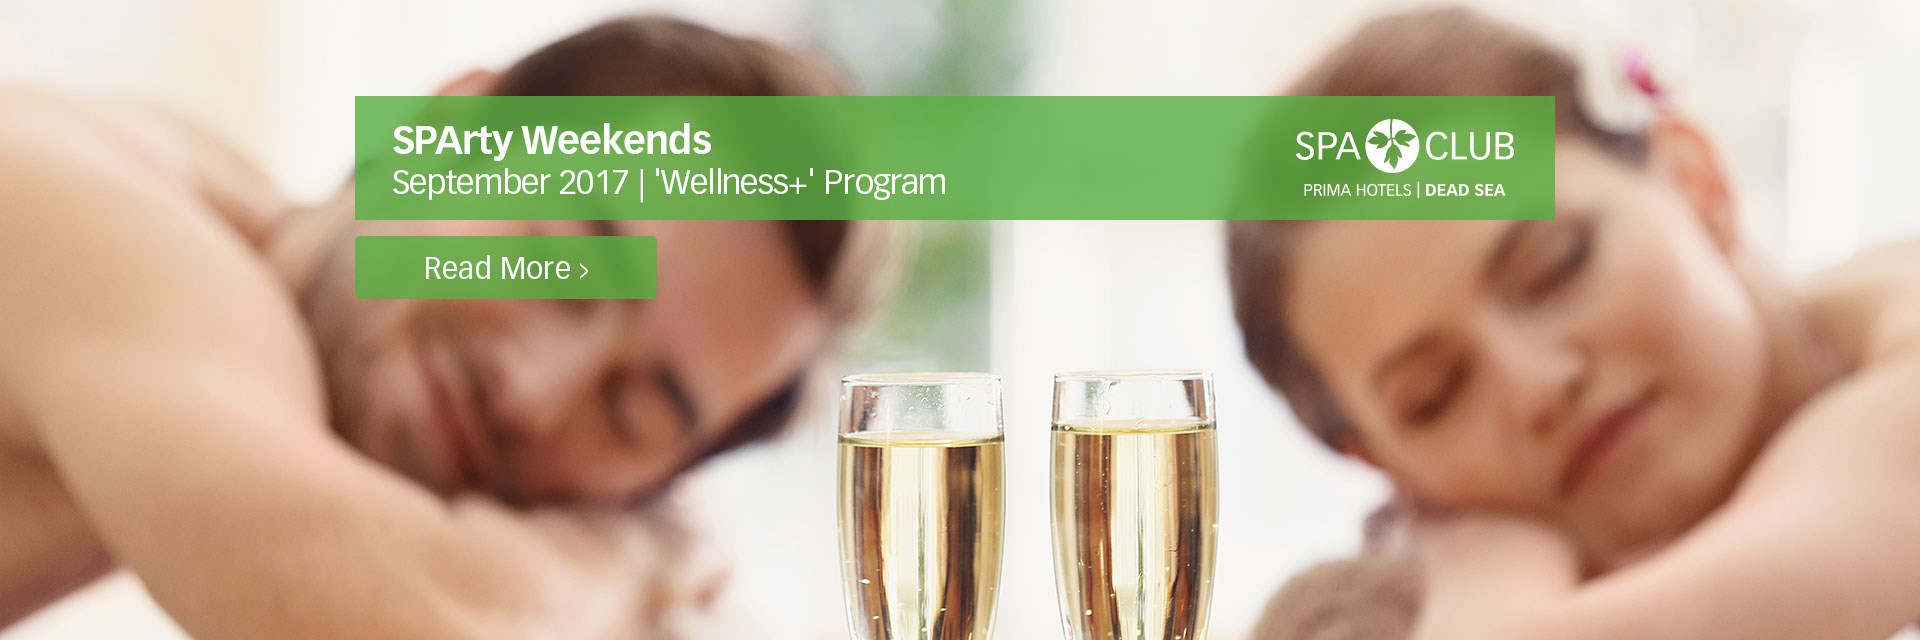 Wellness+ September - SPArty Weekends